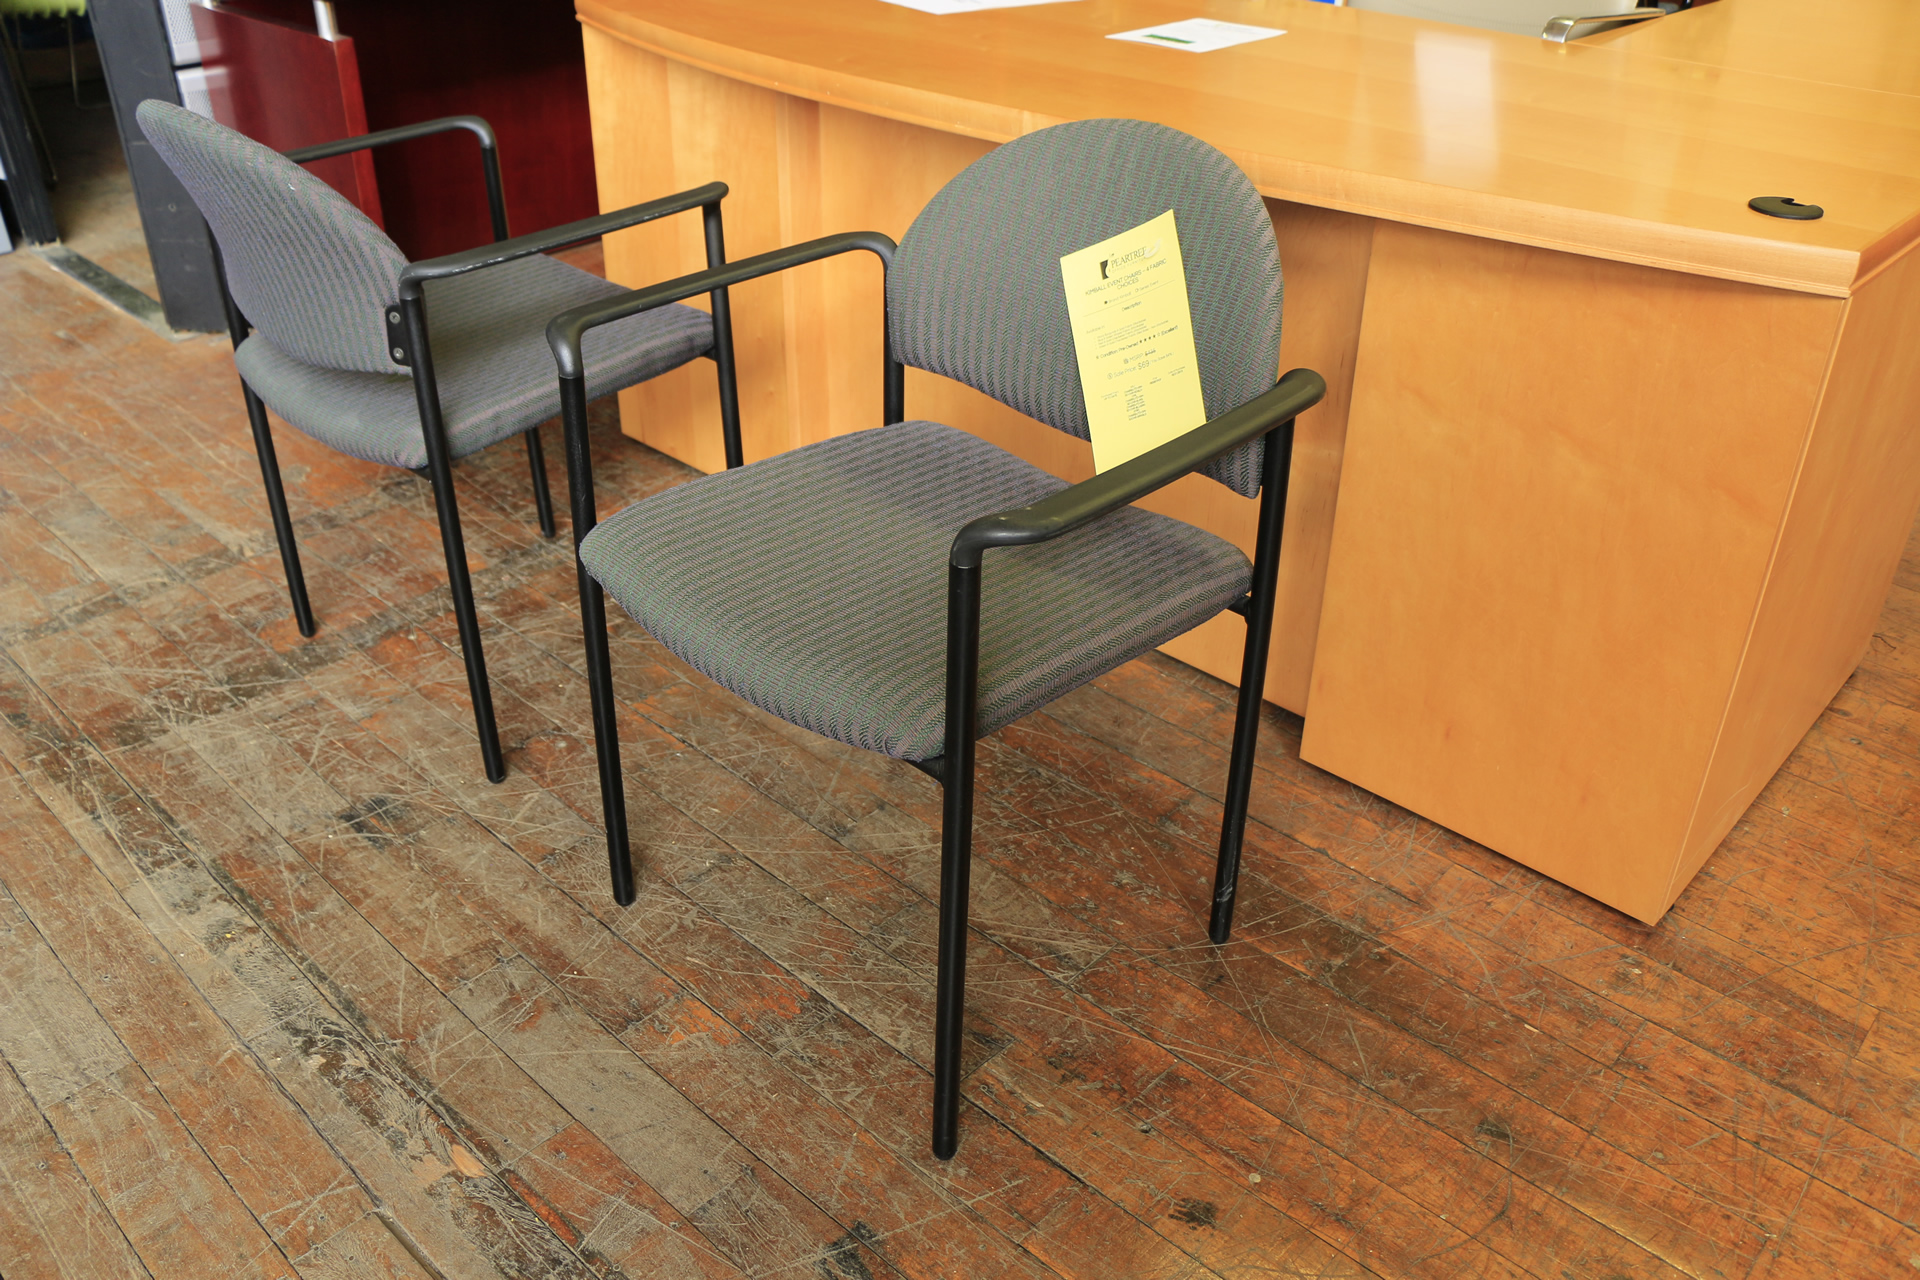 peartreeofficefurniture_peartreeofficefurniture_peartreeofficefurniture_2015-06-02_17-31-25.jpg